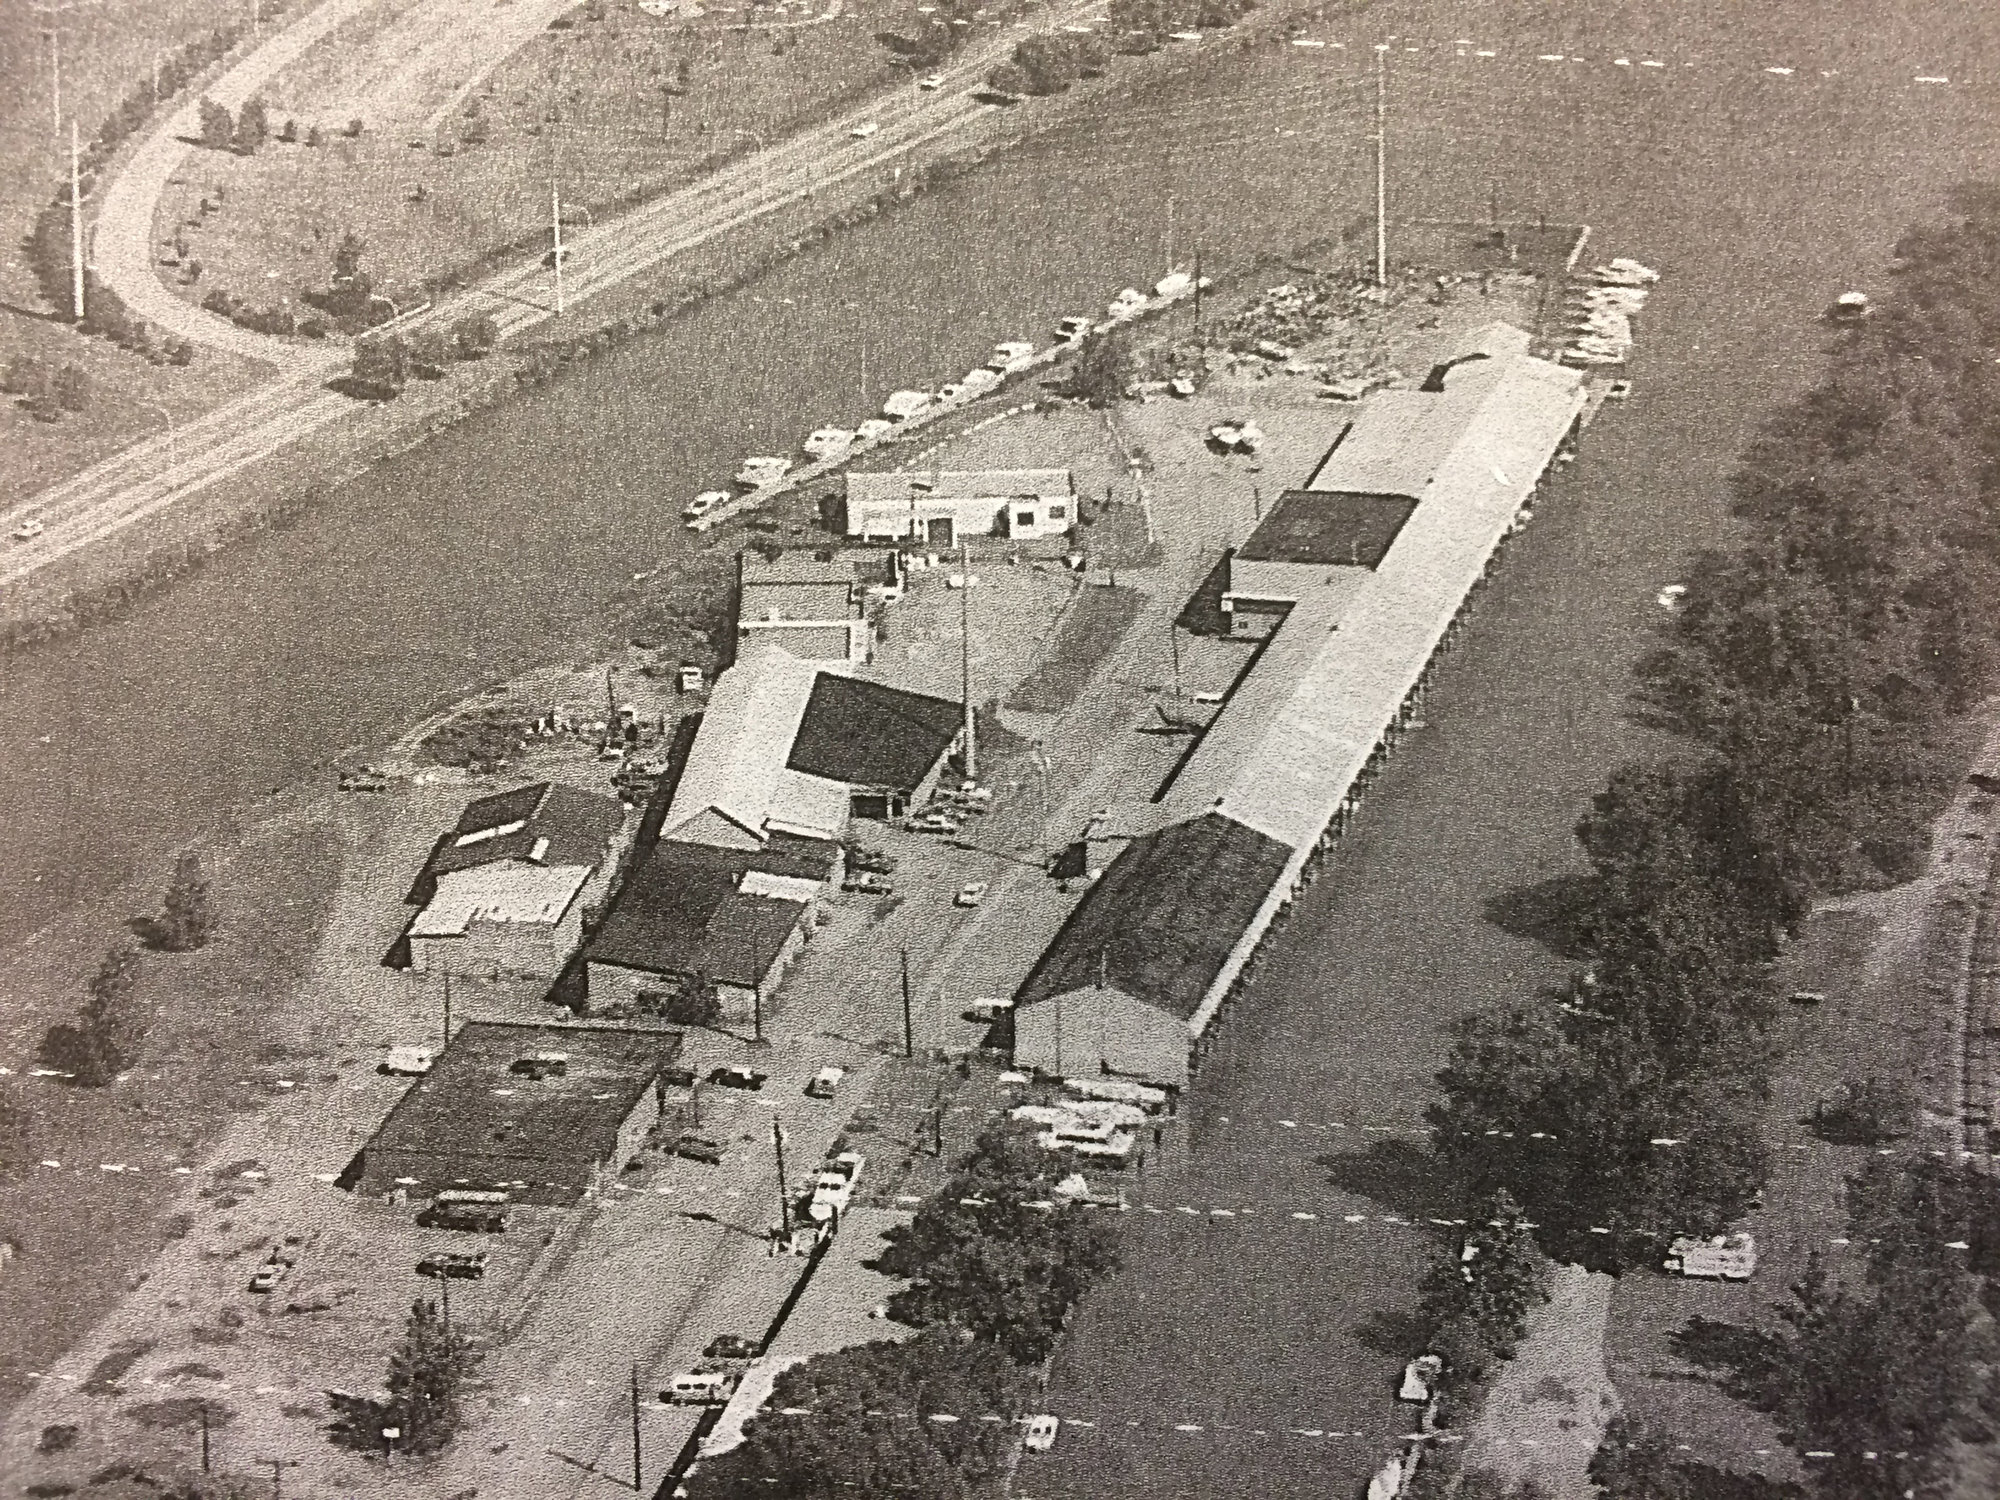 Inlet Island in the 1970s. The place that would eventually house places like Island Health and Fitness and the Boatyard Grill was once home to industrial businesses, creating a very different atmosphere and culture around the waterfront.